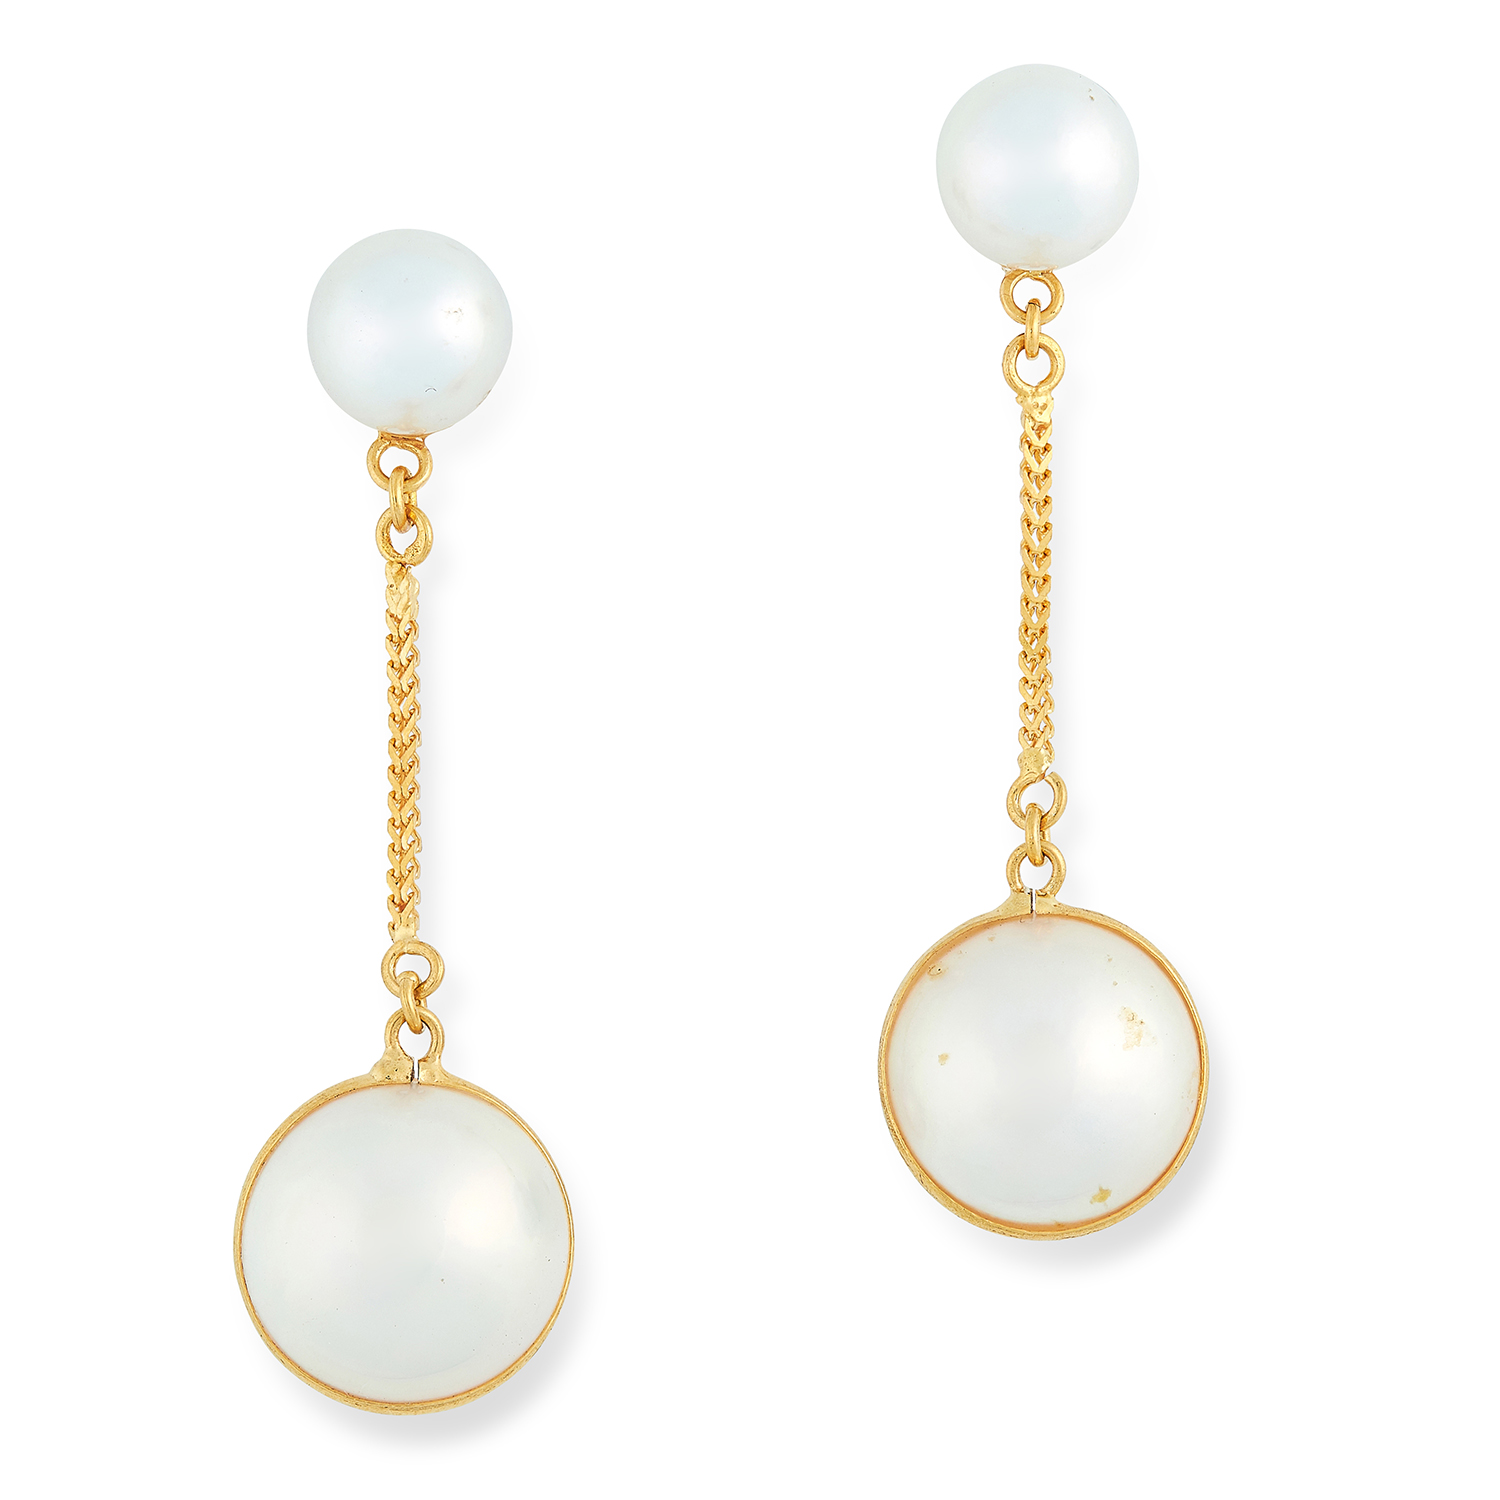 Los 20 - PEARL DROP EARRINGS set with a pearl and a pearl drop, 4.4cm, 4.4g.